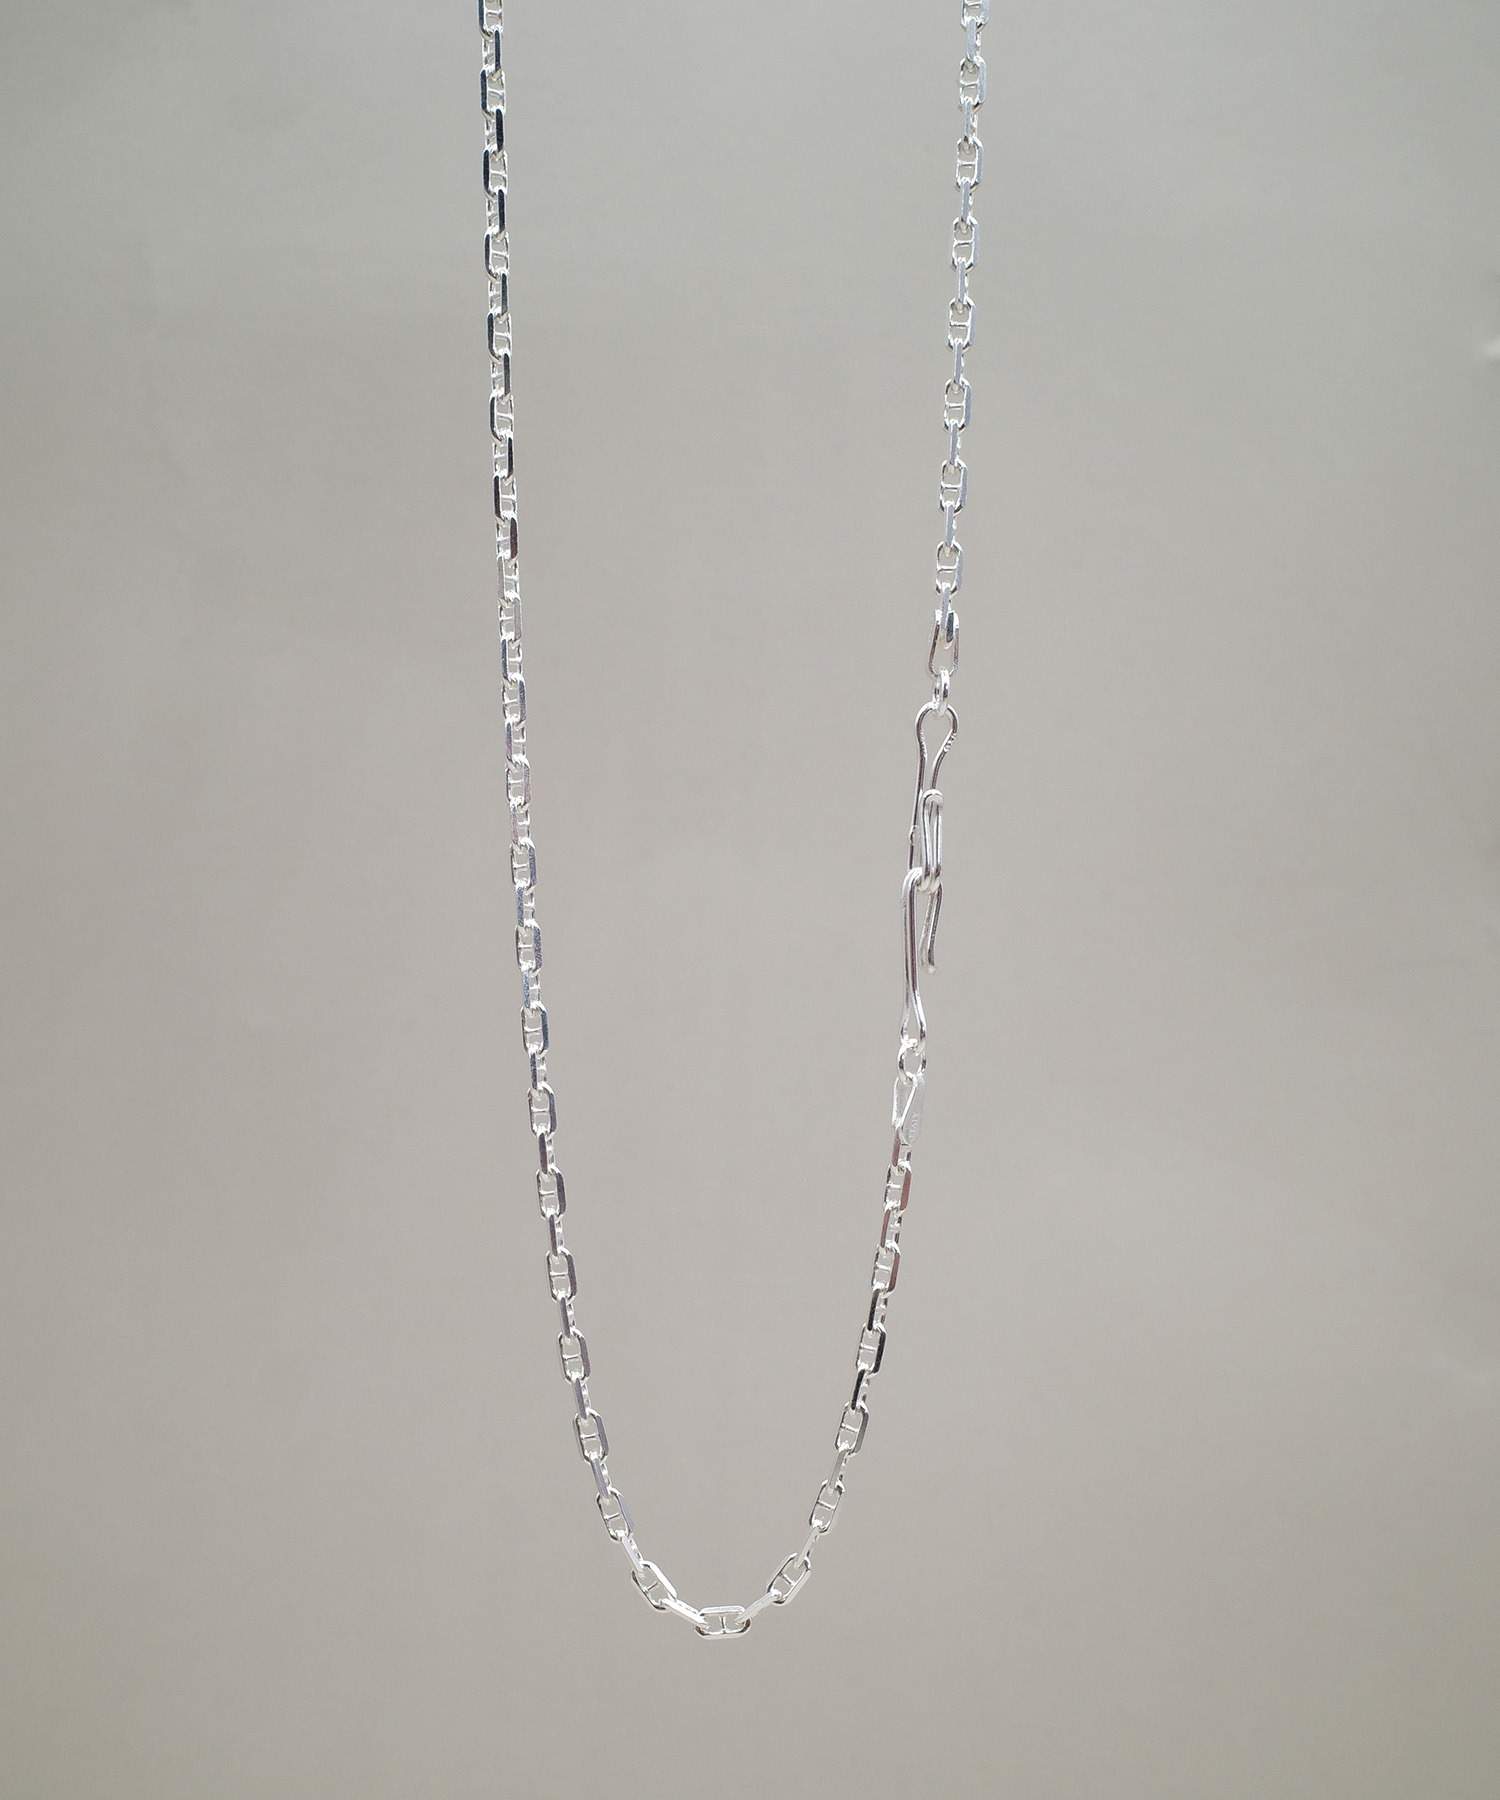 【ISOLATION / アイソレーション】Silver925 Multi chain Necklace